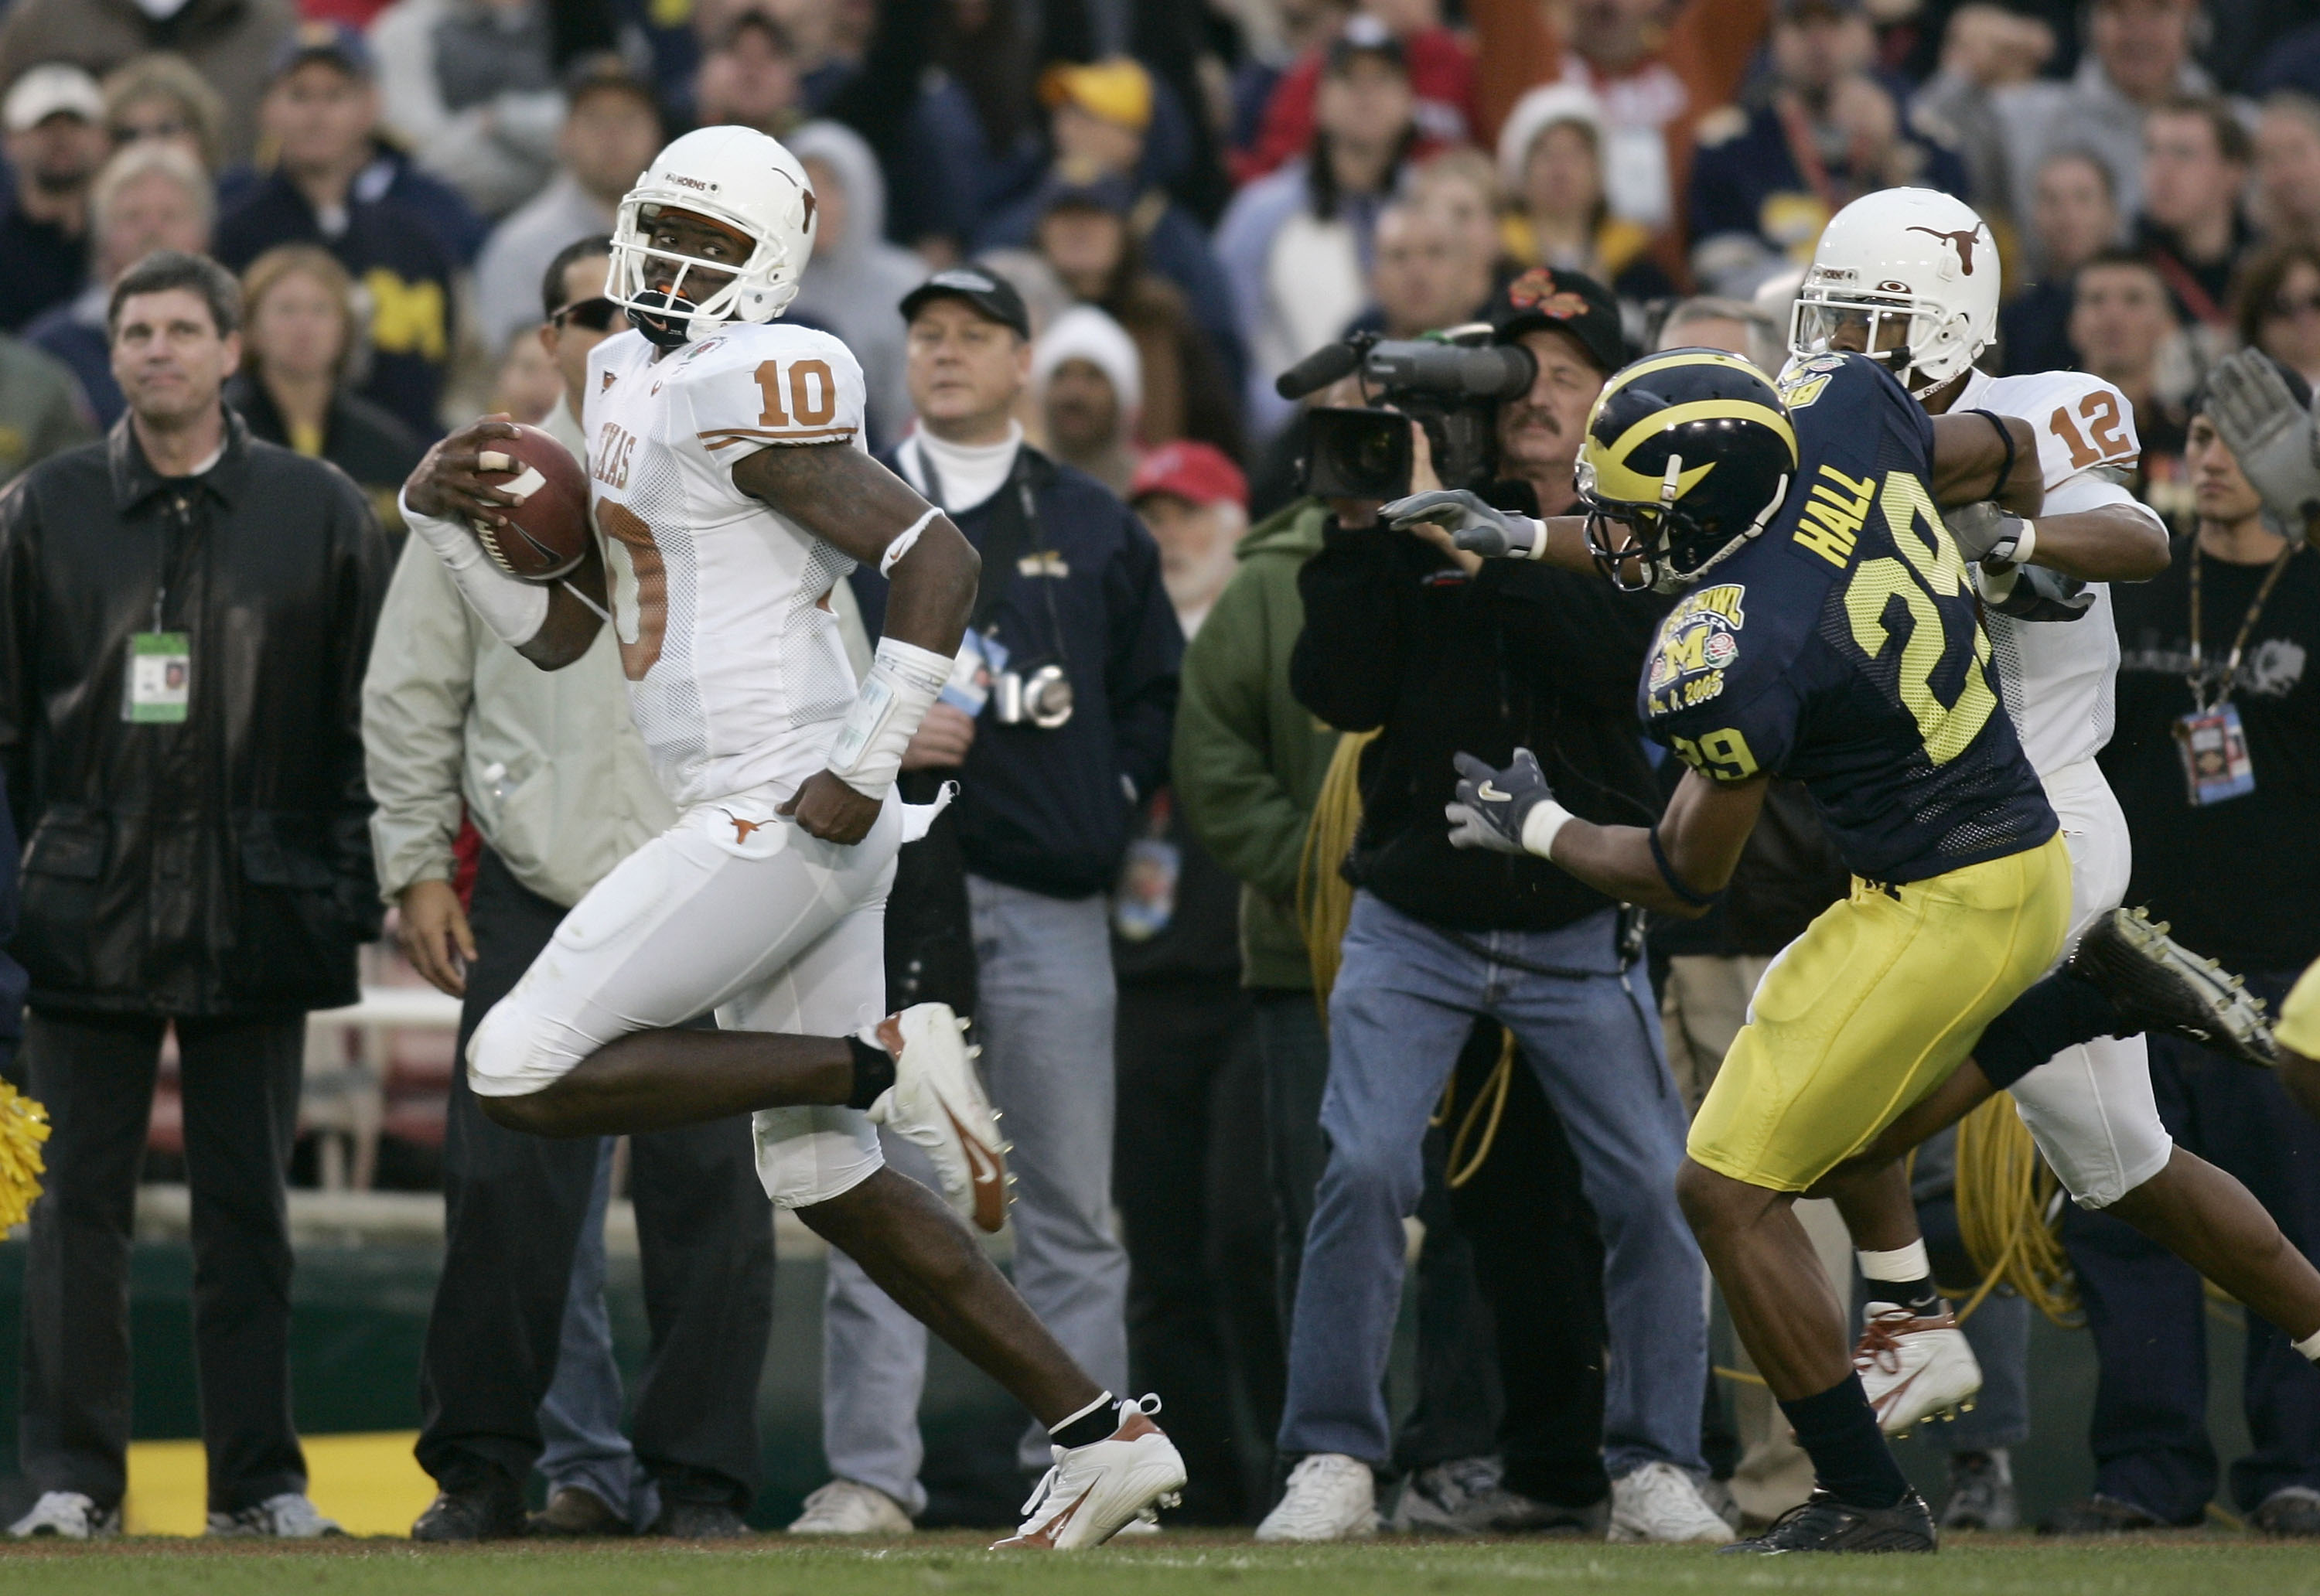 PASADENA, CA - JANUARY 01:  Quarterback Vince Young #10 of the Texas Longhorns scores his second rushing touchdown past Leon Hall #29 of the Michigan Wolverines in the 91st Rose Bowl Game at the Rose Bowl on January 1, 2005 in Pasadena, California.    (Ph